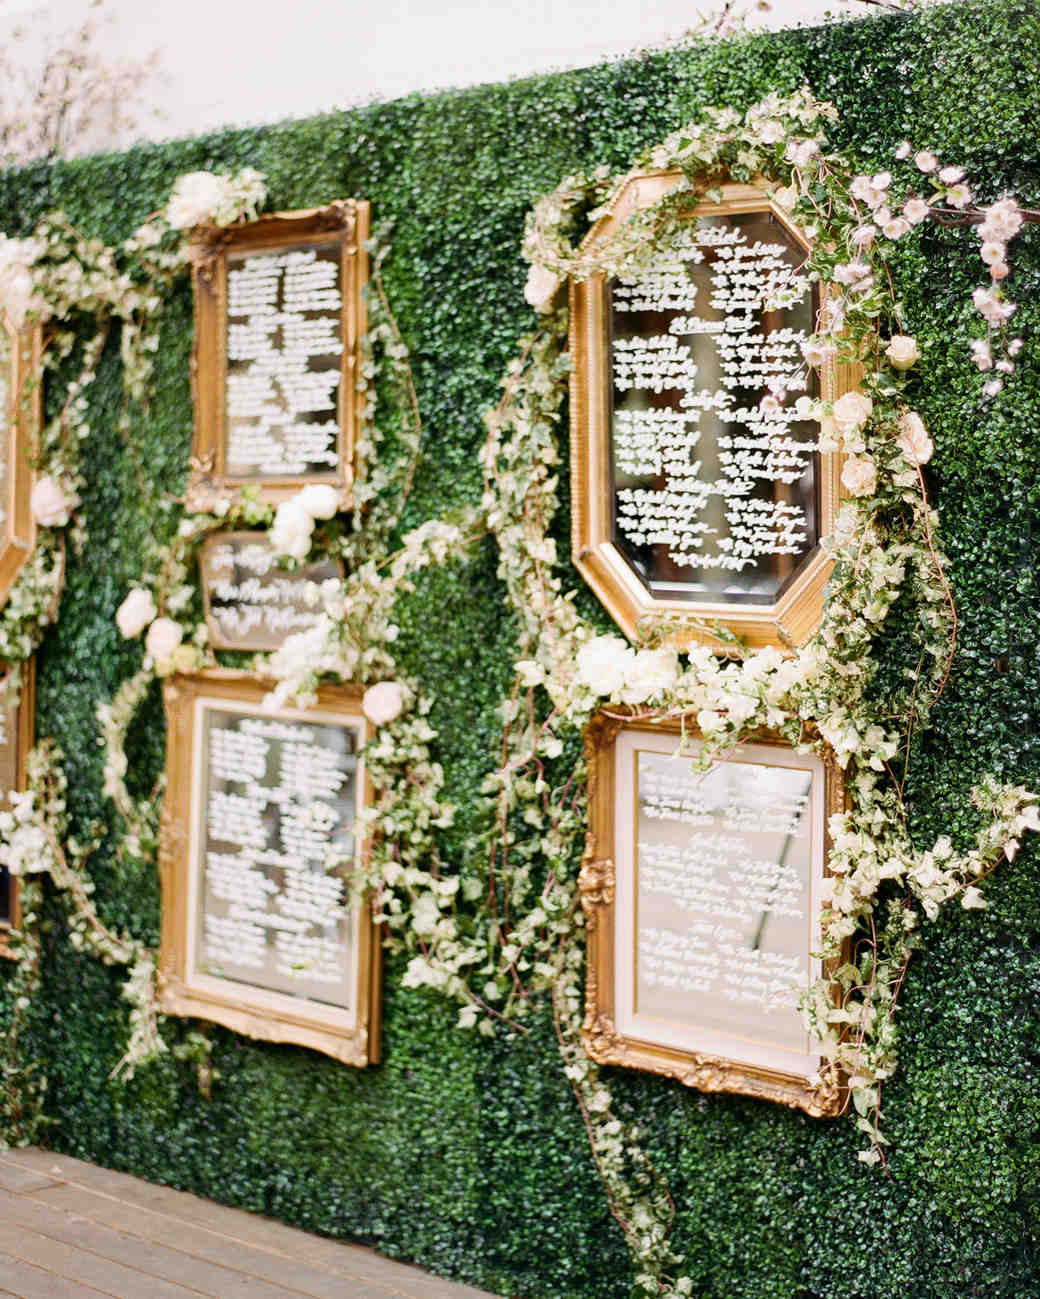 15 Outdoor Wedding Ideas That Are Totally Genius: 25 Unique Wedding Seating Charts To Guide Guests To Their